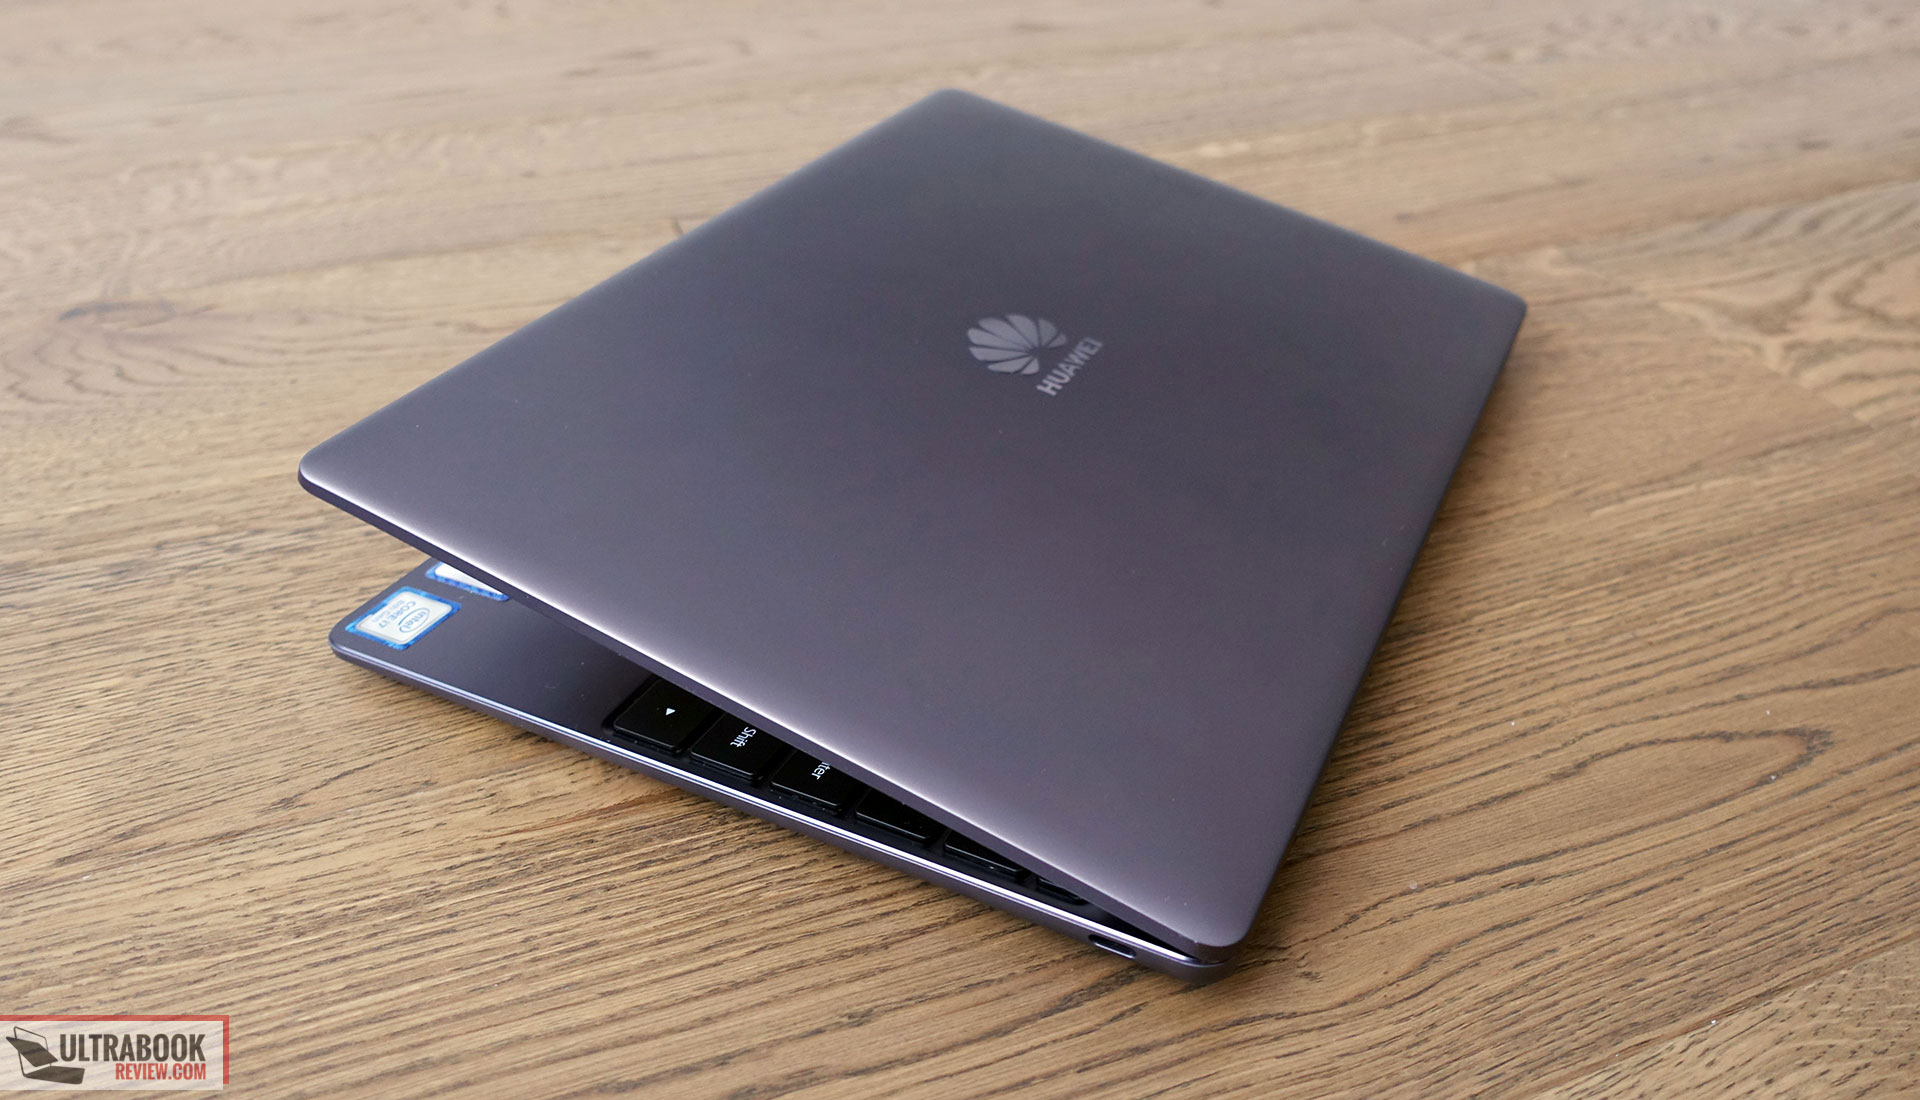 Huawei MateBook 13 review (i7-8550U, Nvidia MX150) - Phoneweek